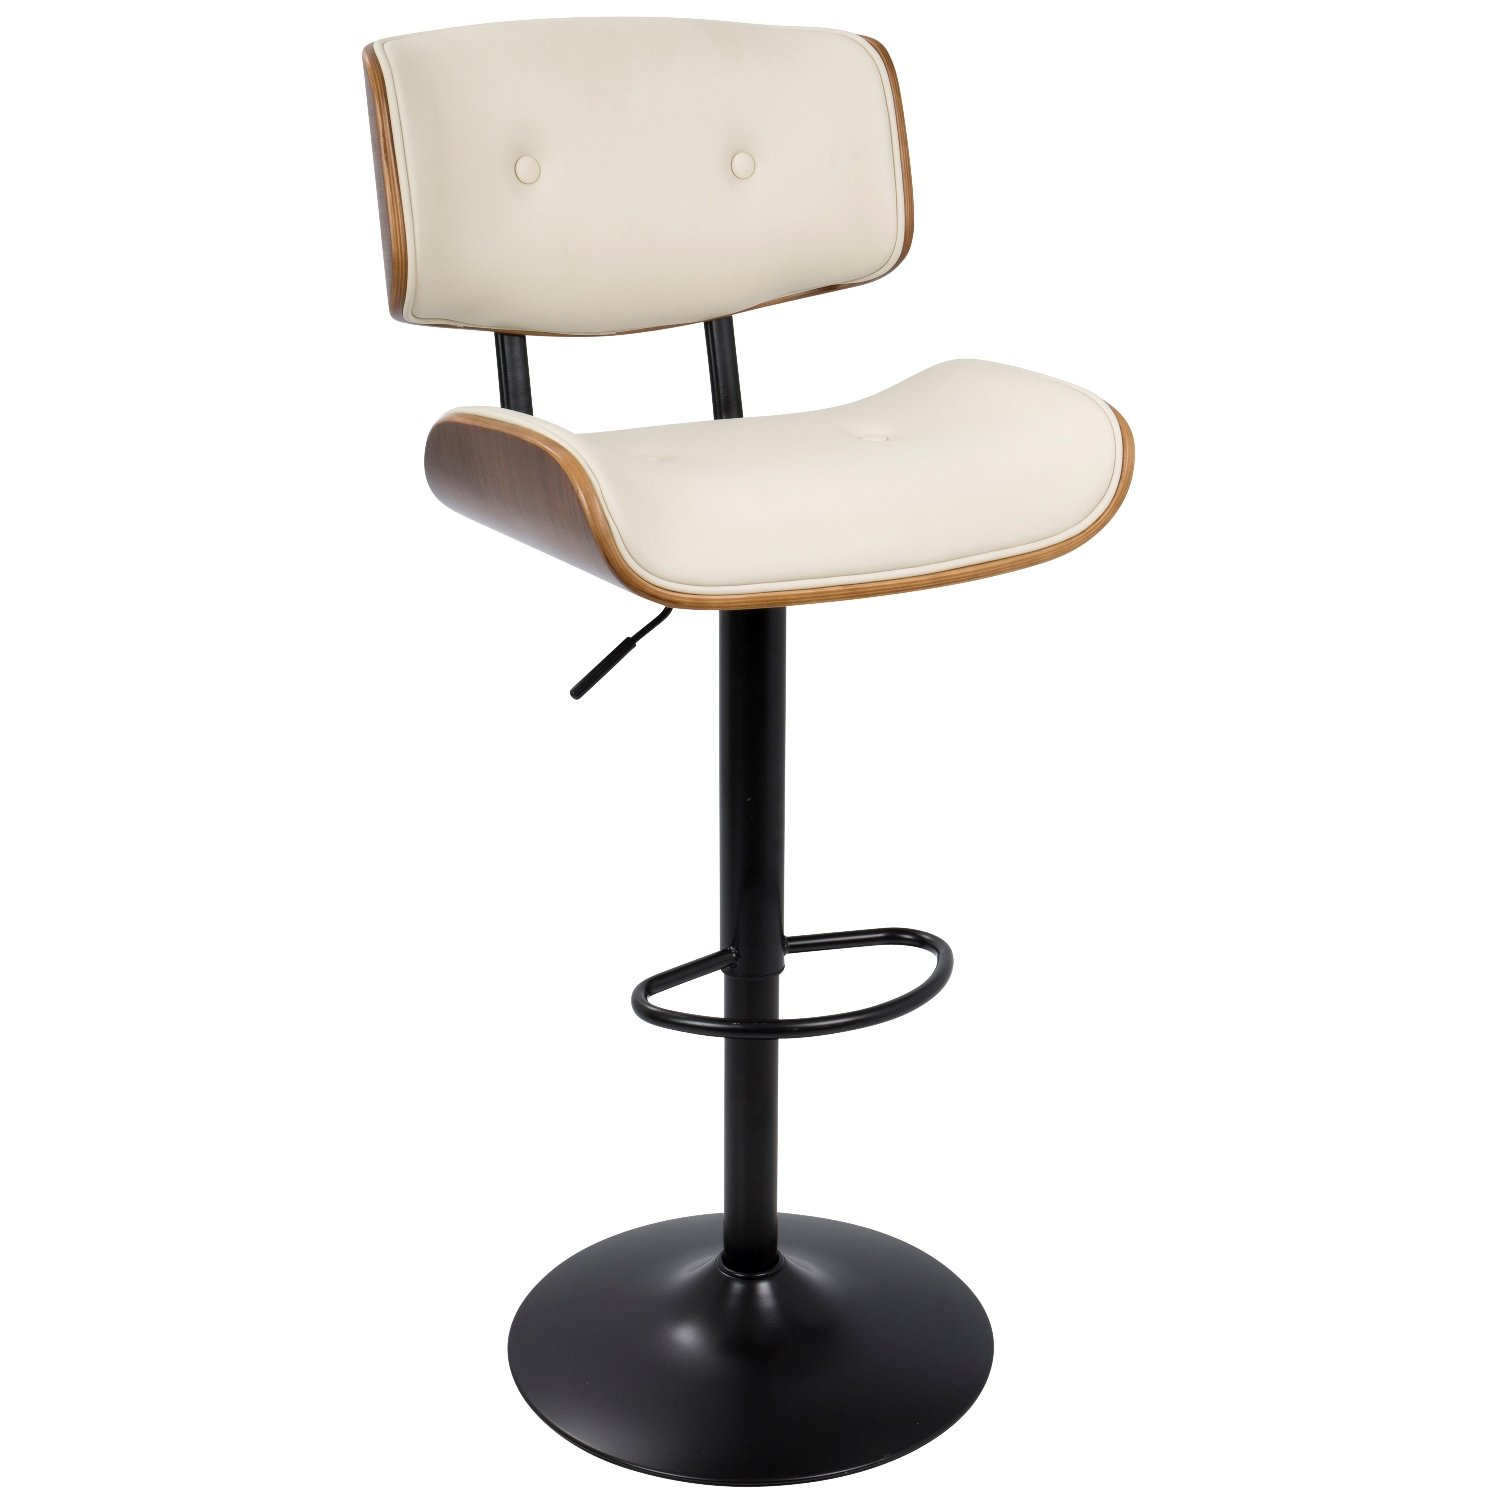 WOYBR BS-JY-LMB WL+CR Wood, Pu Leather, Metal Lombardi Barstool by WOYBR